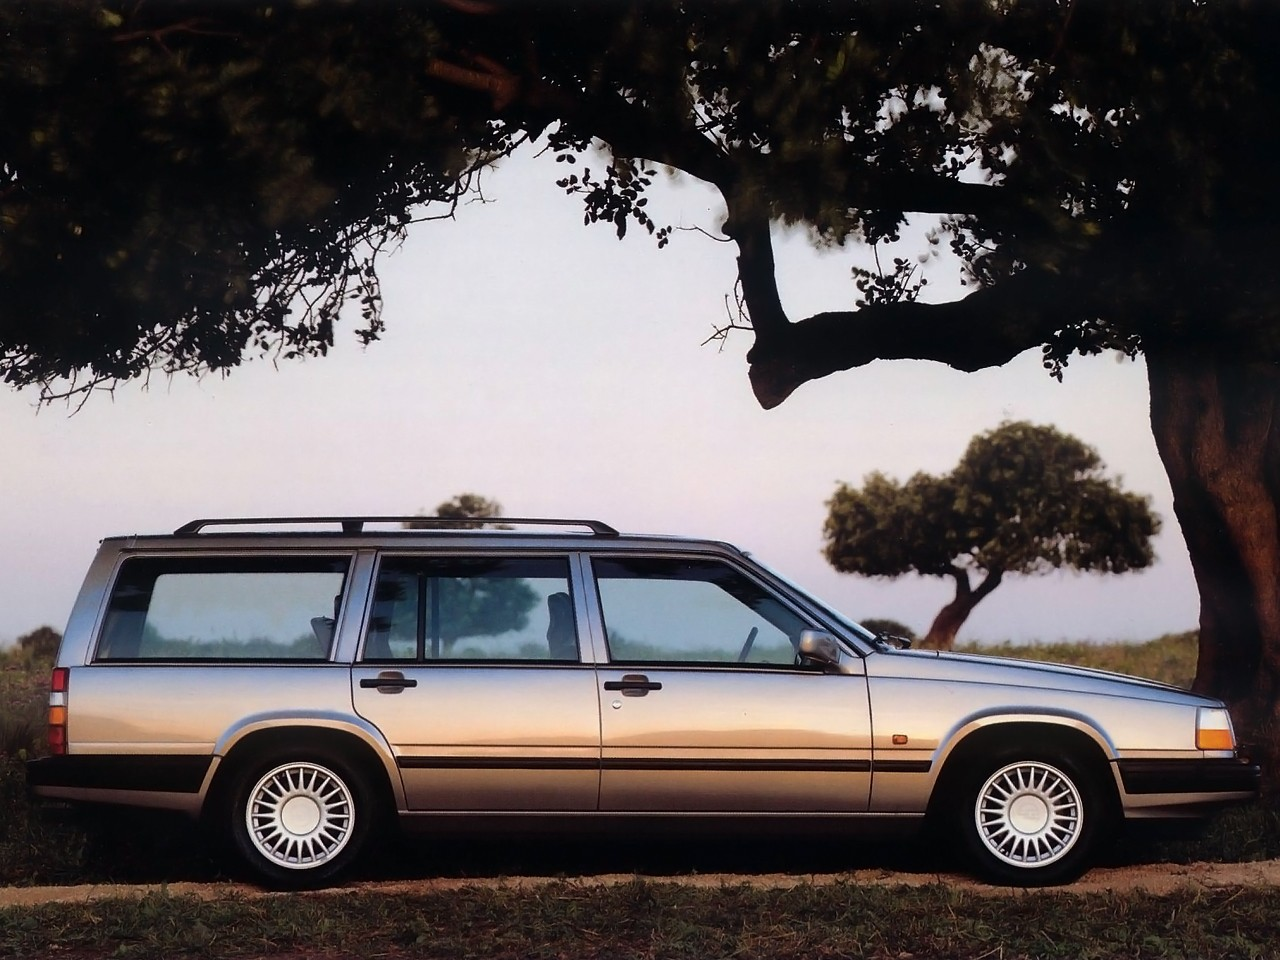 Volvo as well Volvo as well Clusterremoval likewise Hvog together with Volvo Estate. on 1993 volvo 940 turbo